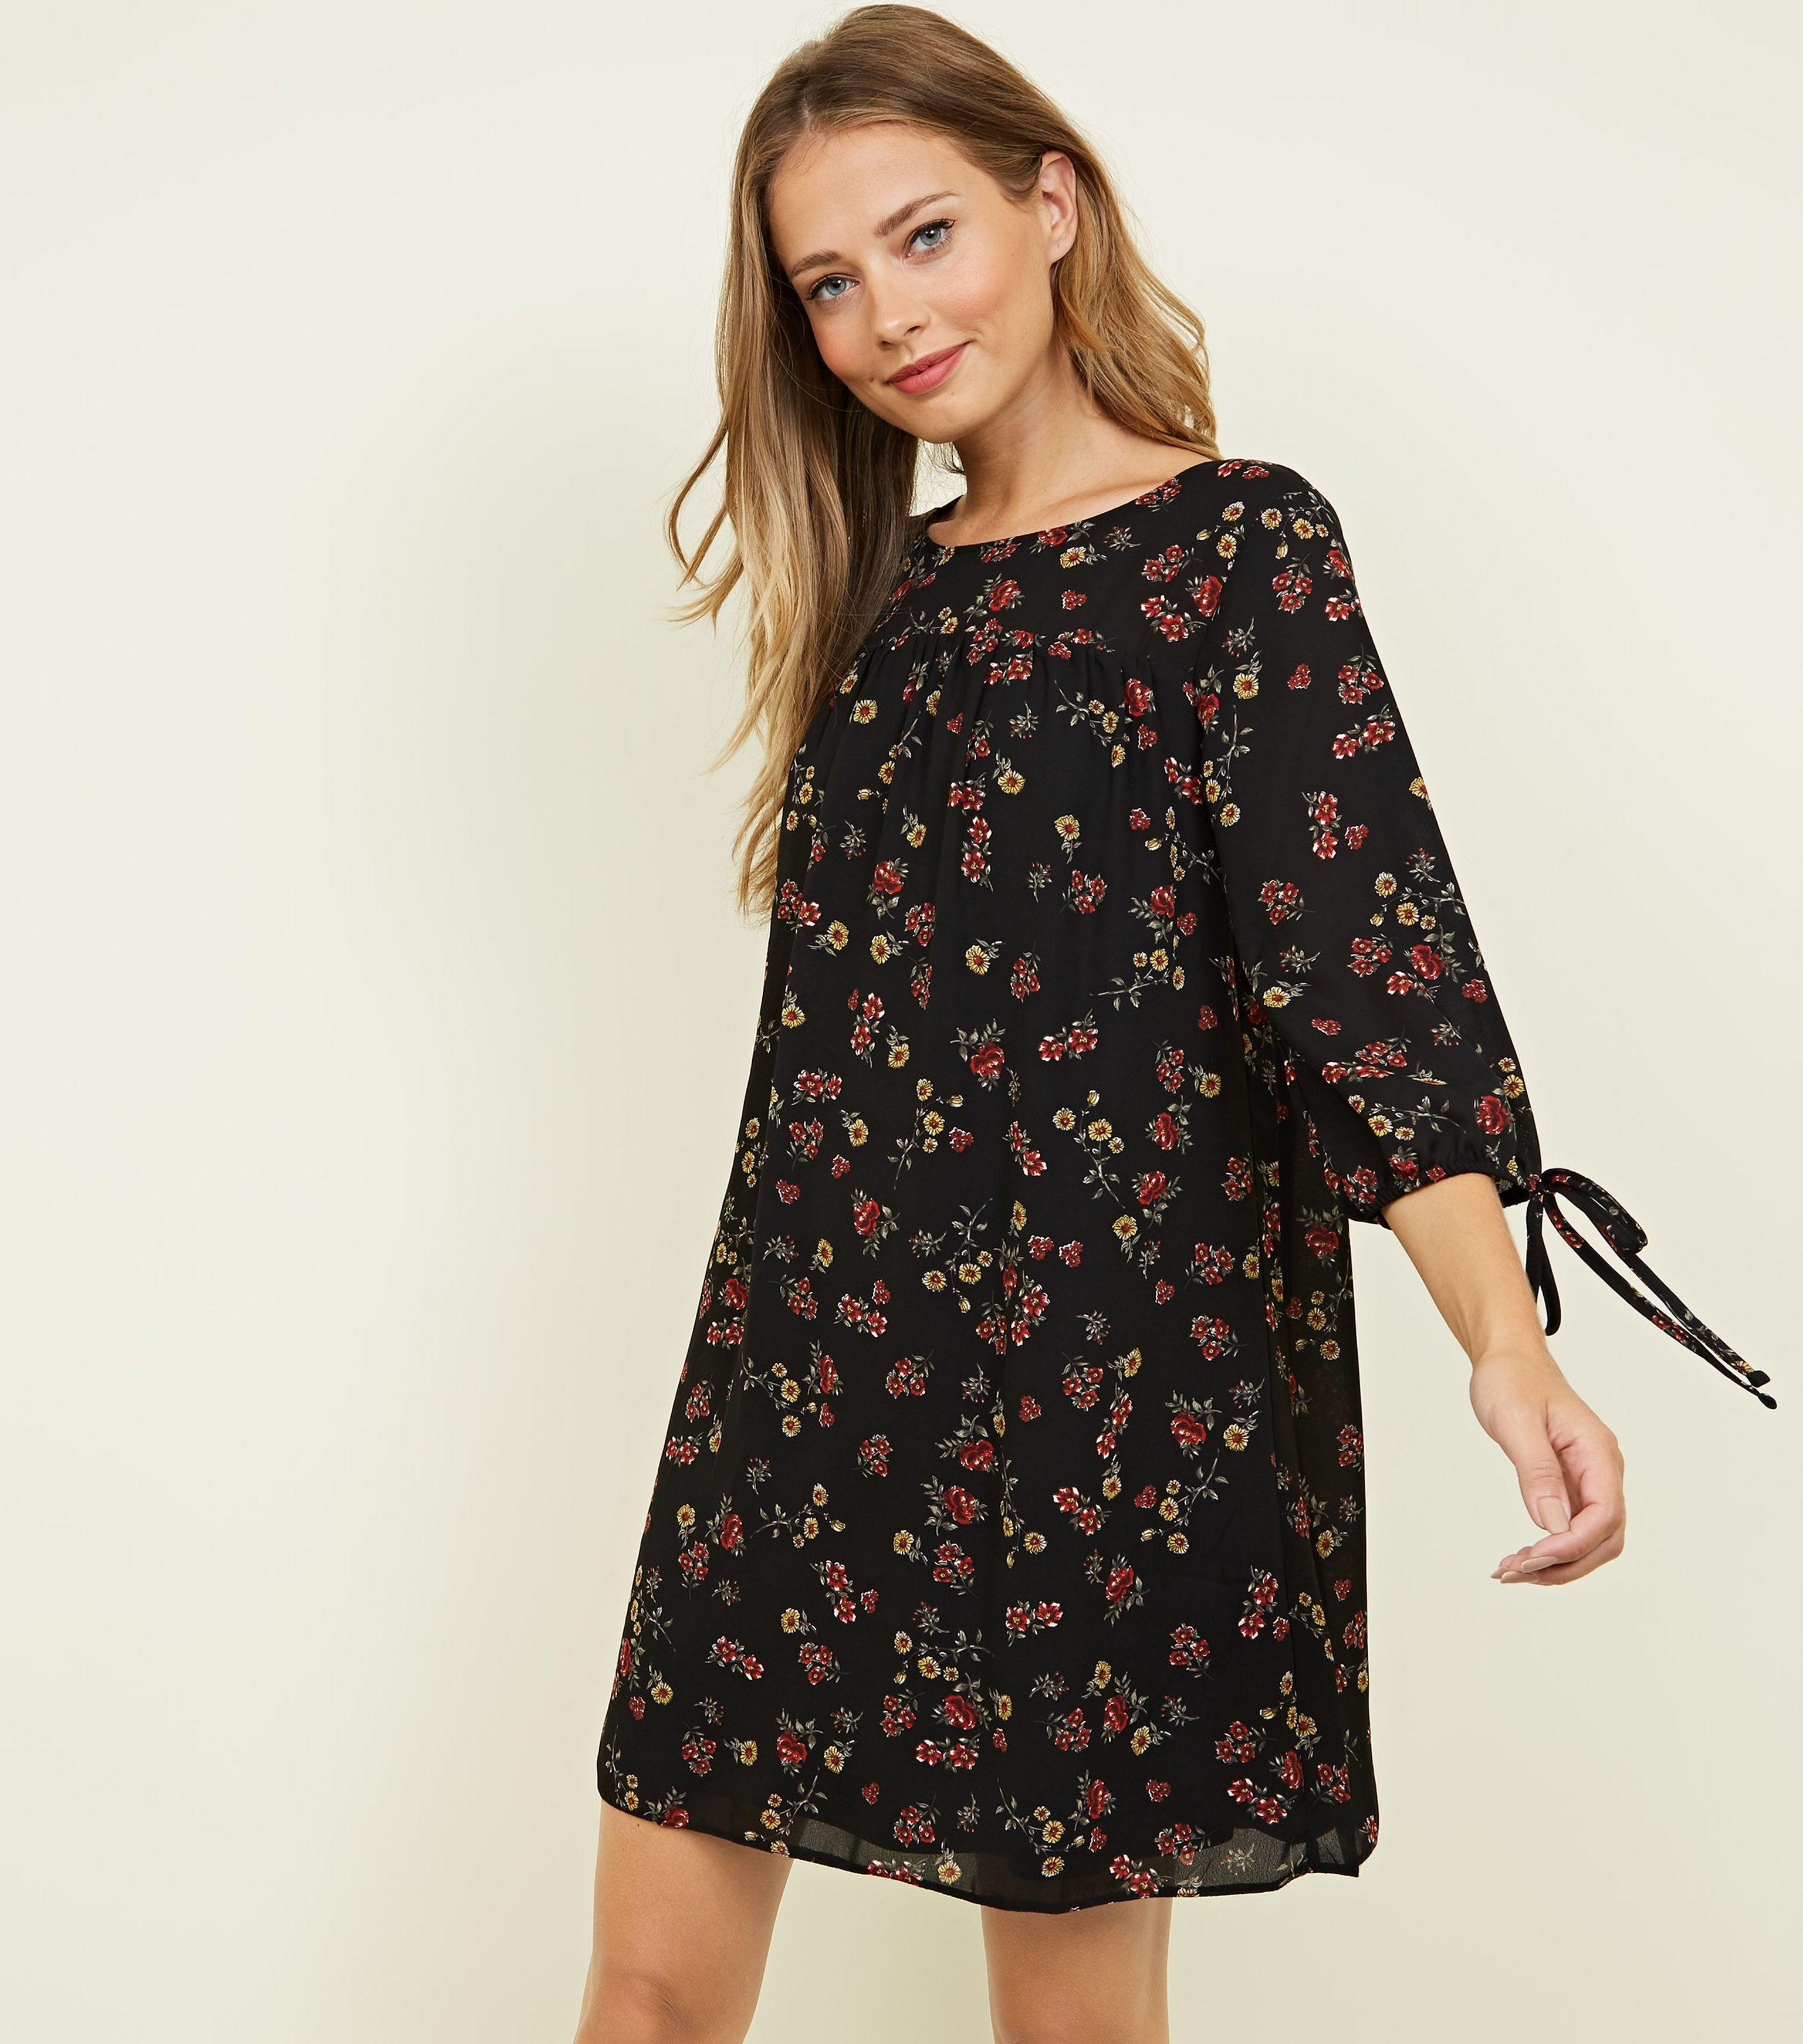 fd559f06699 Apricot - Black Vintage Ditsy Floral Smock Dress - Lyst. View fullscreen